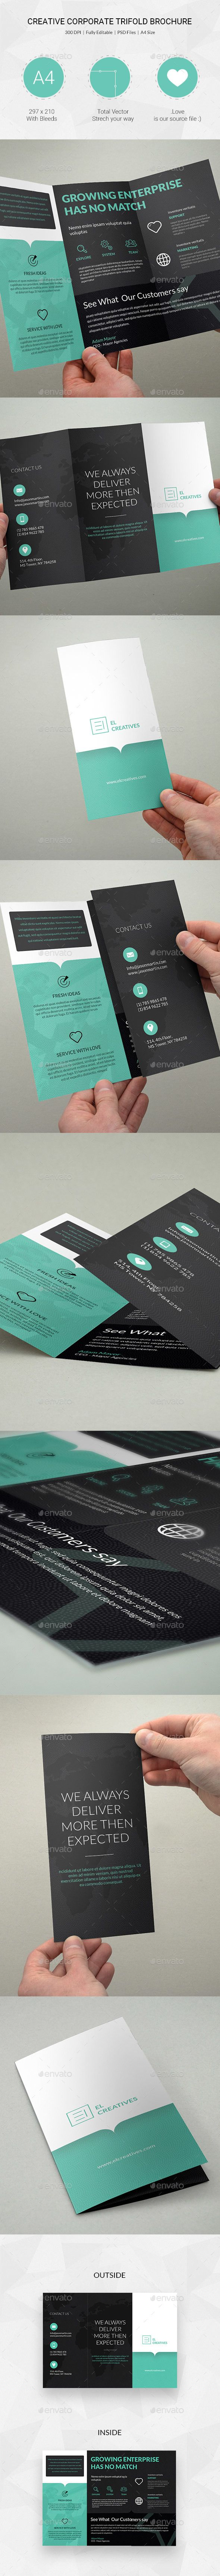 Creative Corporate Trifold Business Brochure Template PSD #design Download: http://graphicriver.net/item/creative-corporate-trifold-business-brochure-21/13540385?ref=ksioks